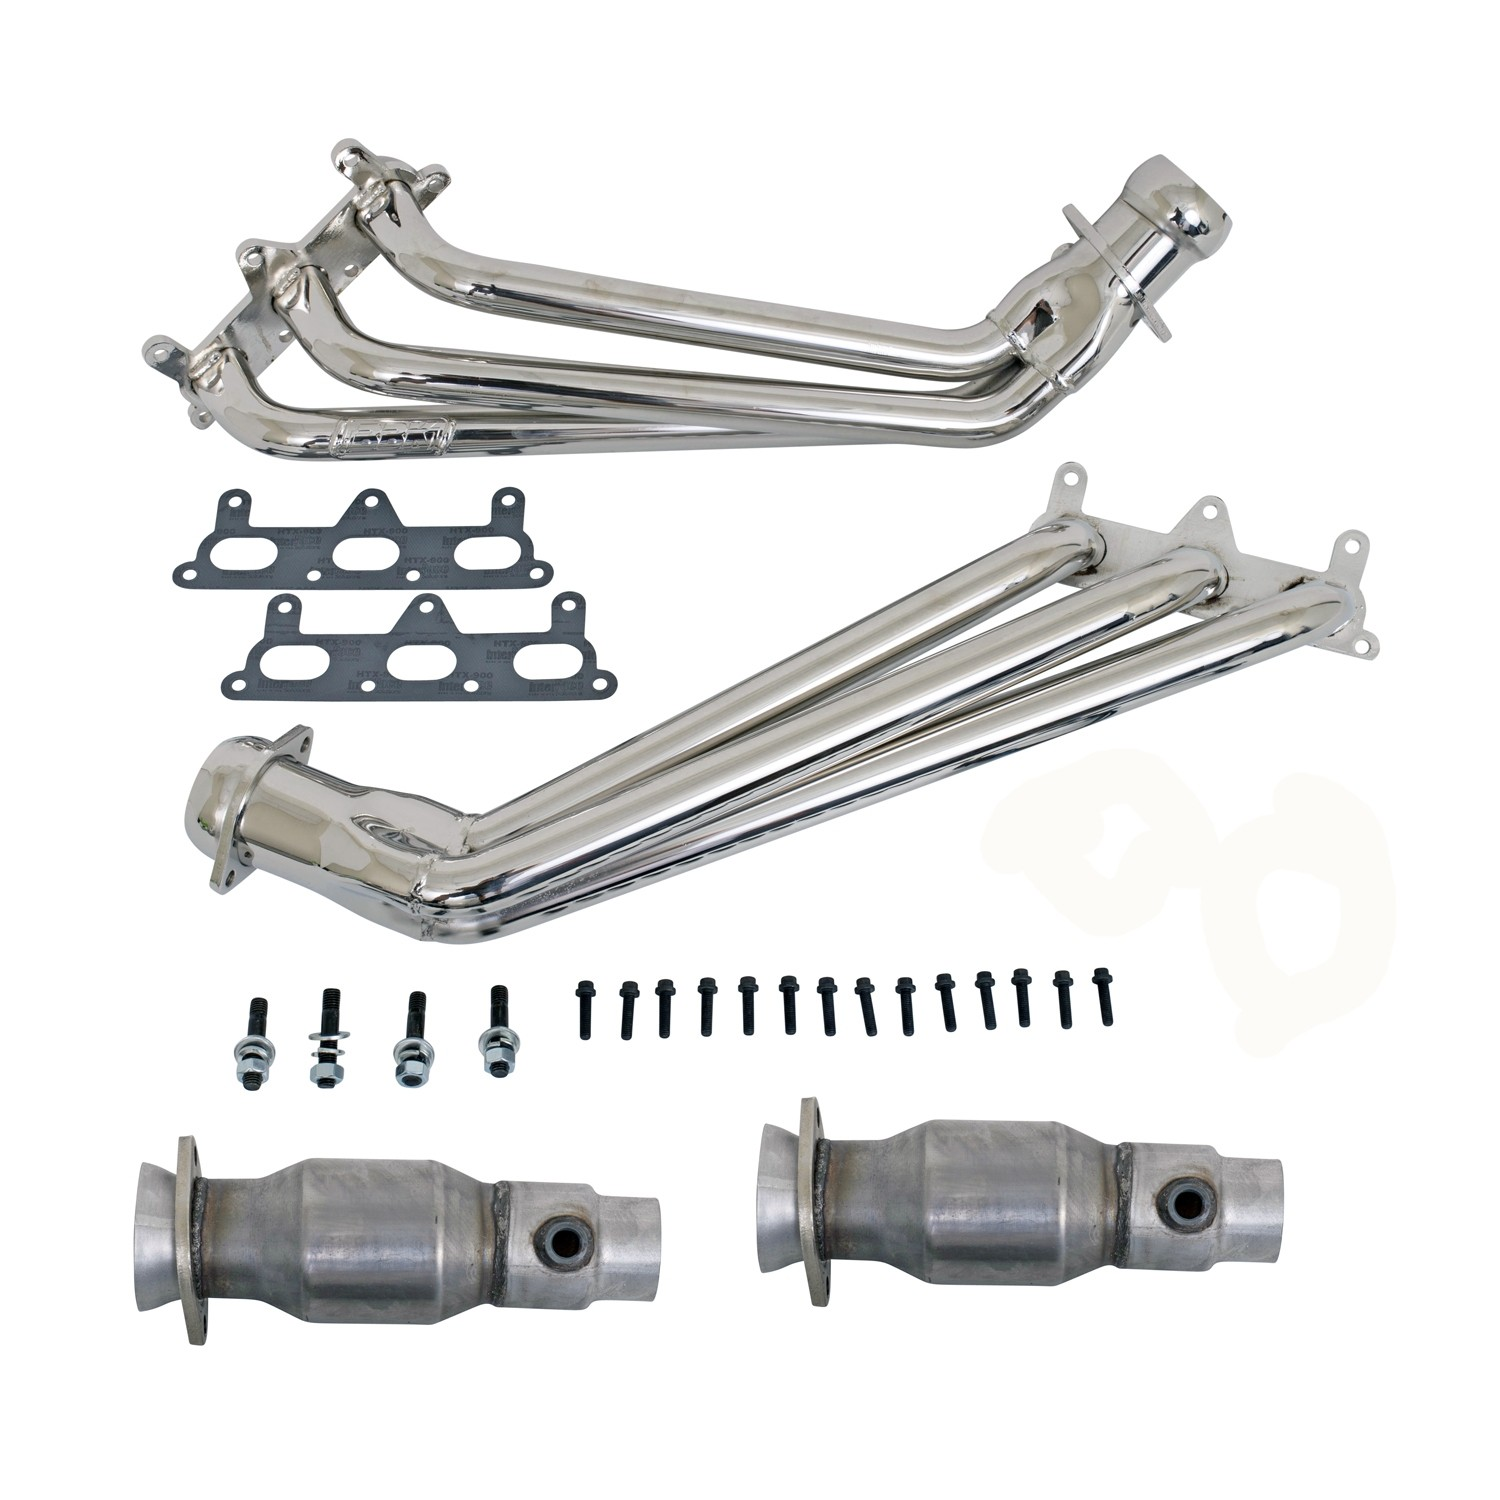 "BBK 1-3/4"" Chrome Long Tube Headers w/ Converters (10-11 Camaro V6)"